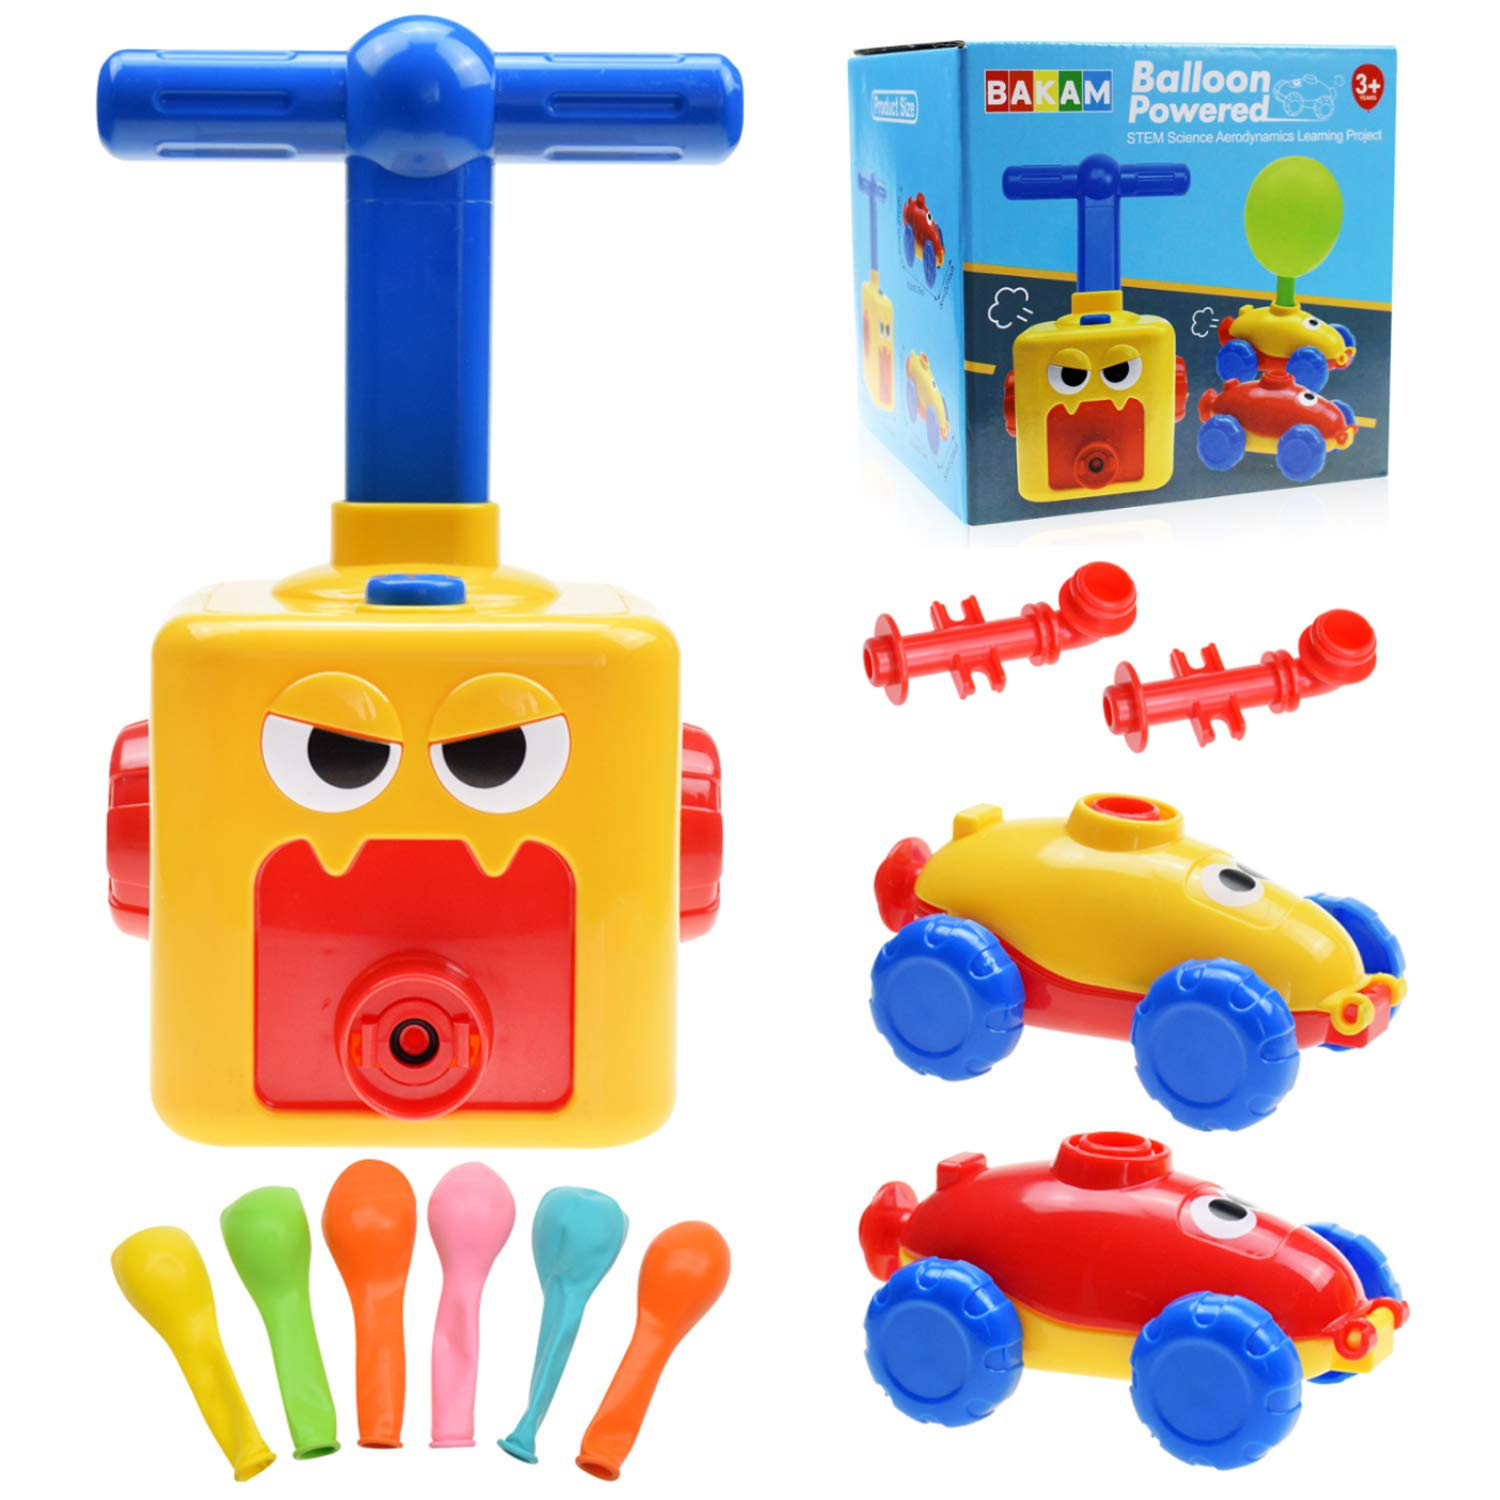 Power Balloon Car Toy for Kids, Balloon Powered Car Children's Science Toy, Inflatable STEM Balloon Pump Cars Racer Kit for Boys Girls